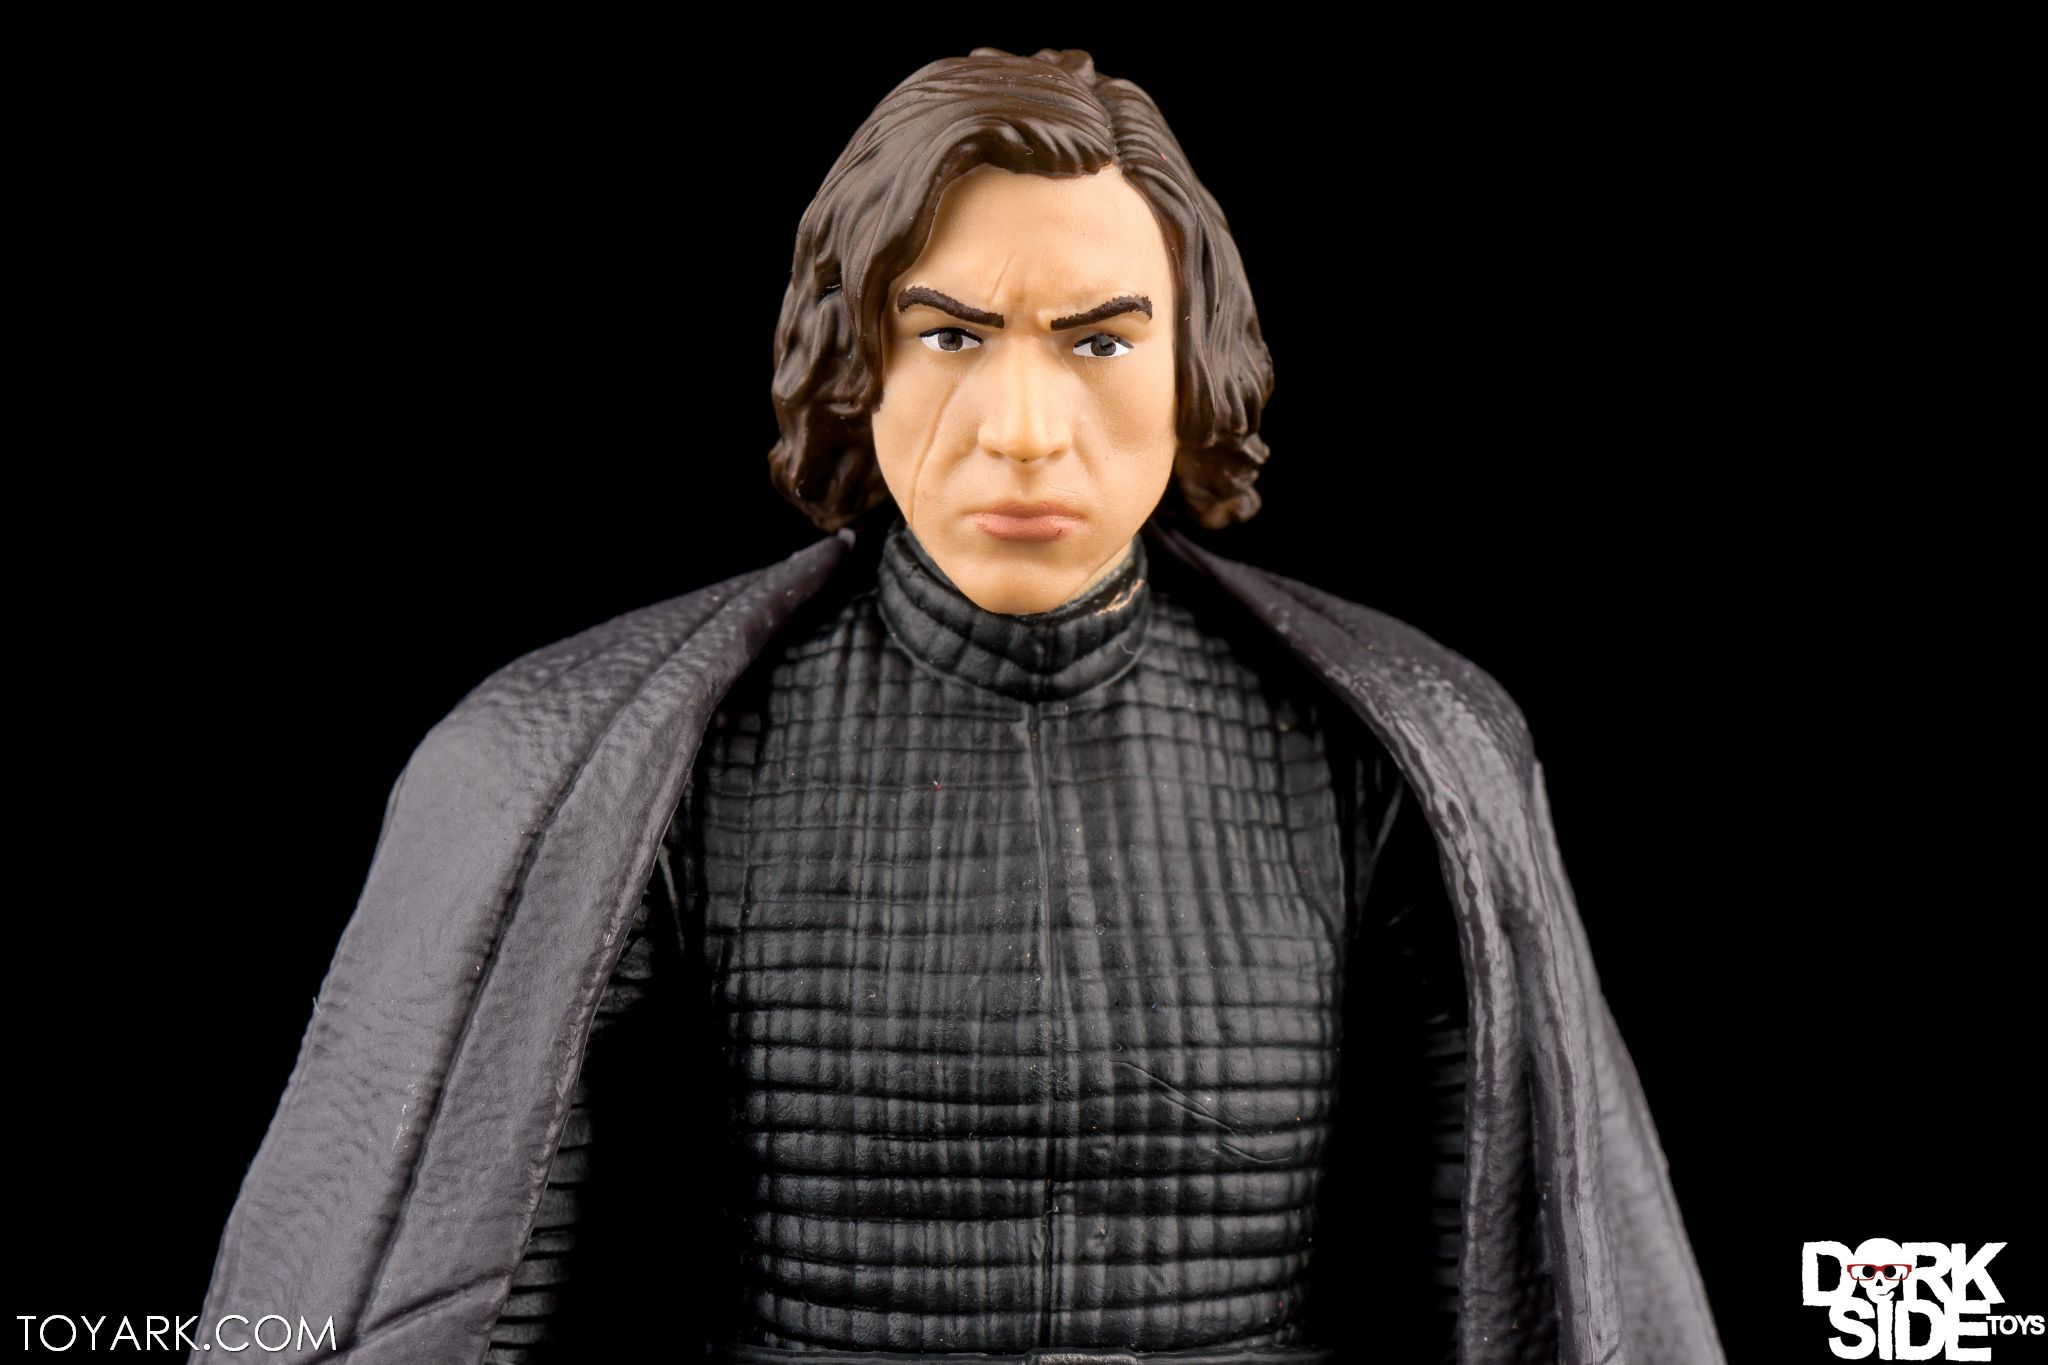 kylo ren the last jedi star wars black series photo review the toyark news. Black Bedroom Furniture Sets. Home Design Ideas